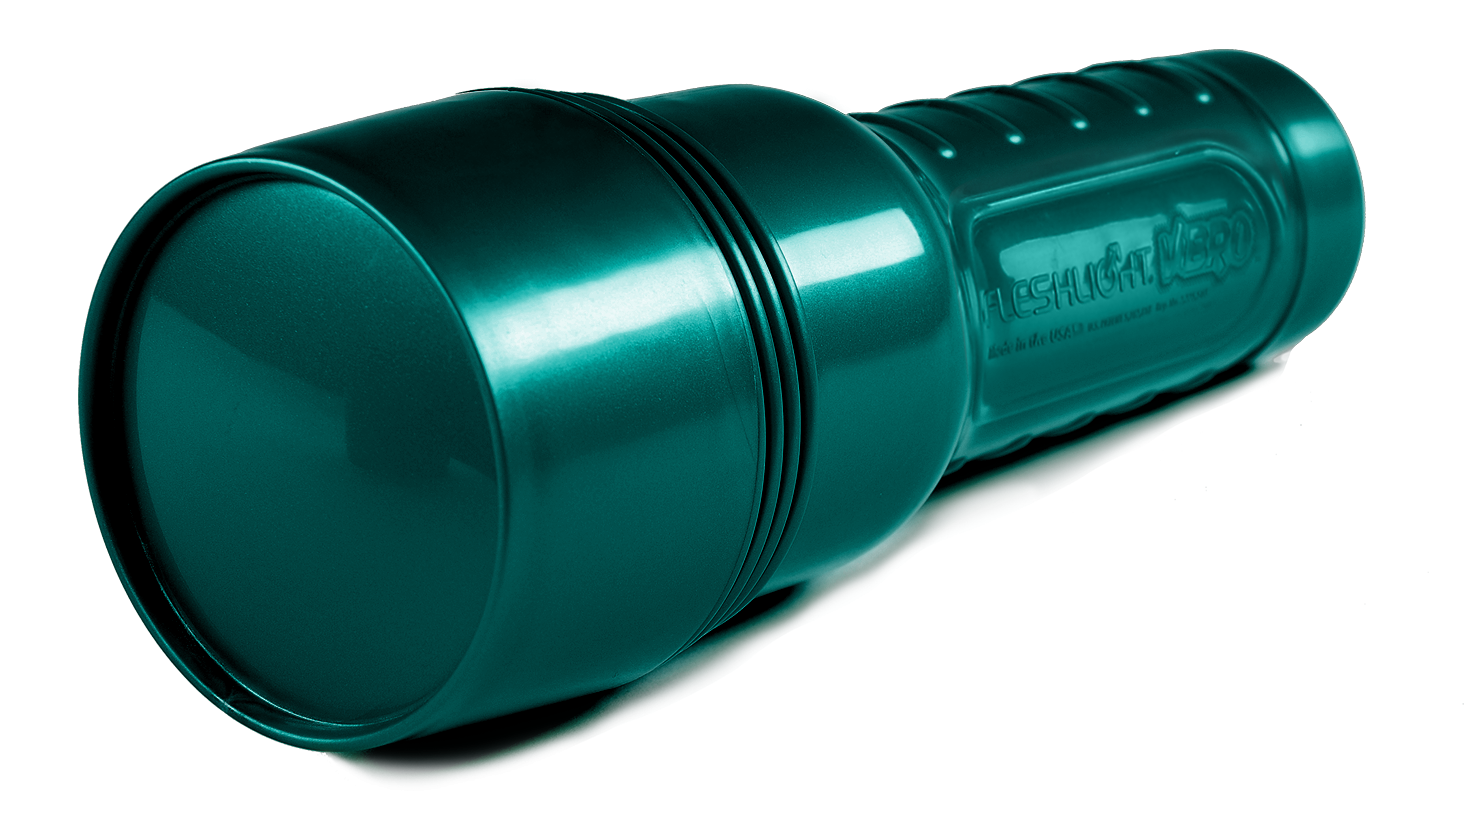 Fleshlight Case: Vibro™ slider image.